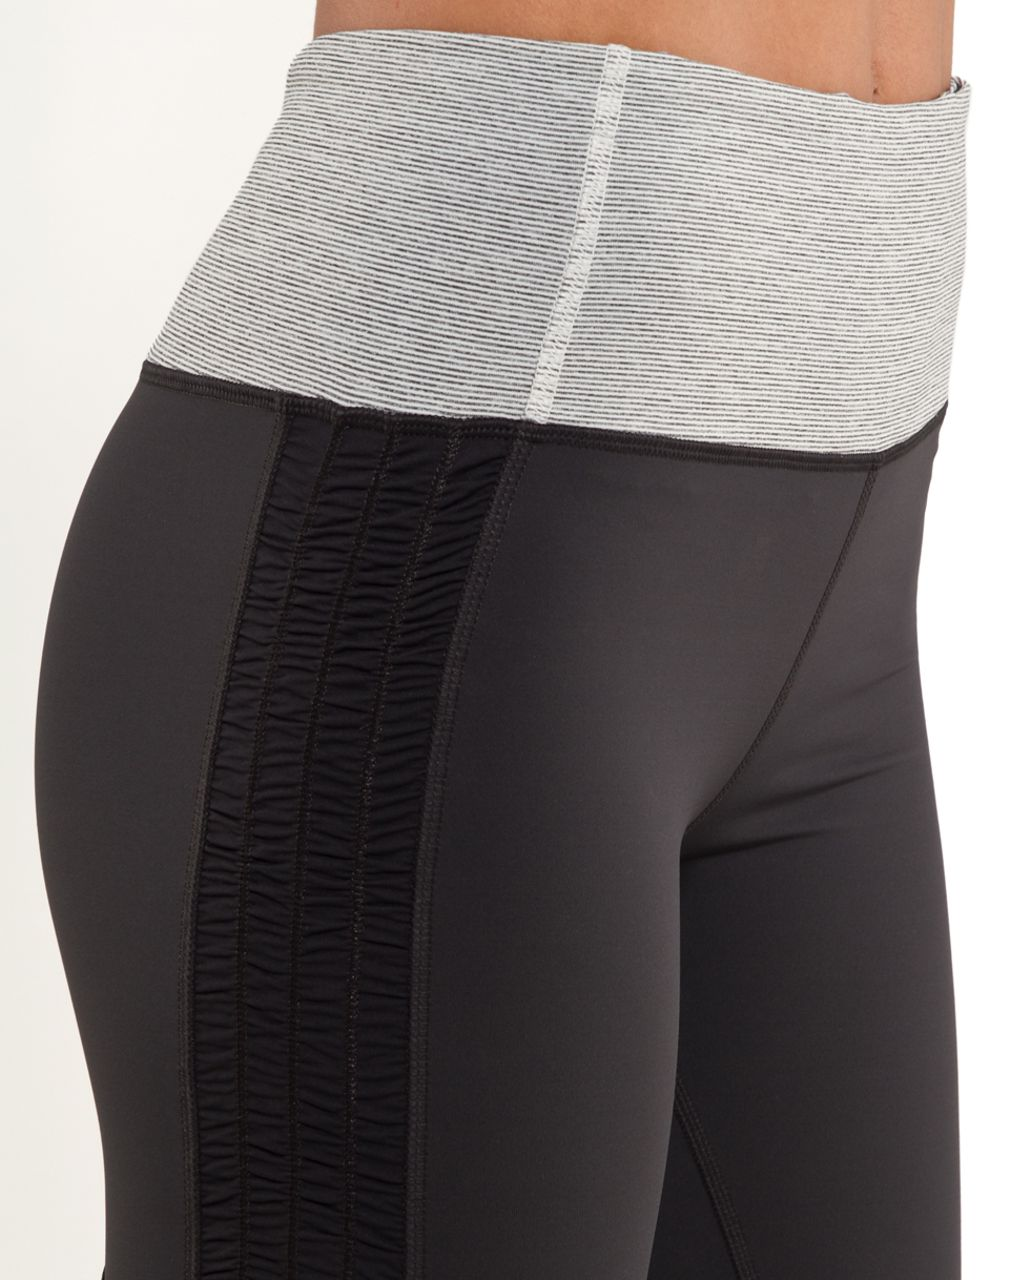 Lululemon Run:  Free Crop - Deep Coal /  Ghost Deep Coal Wee Stripe